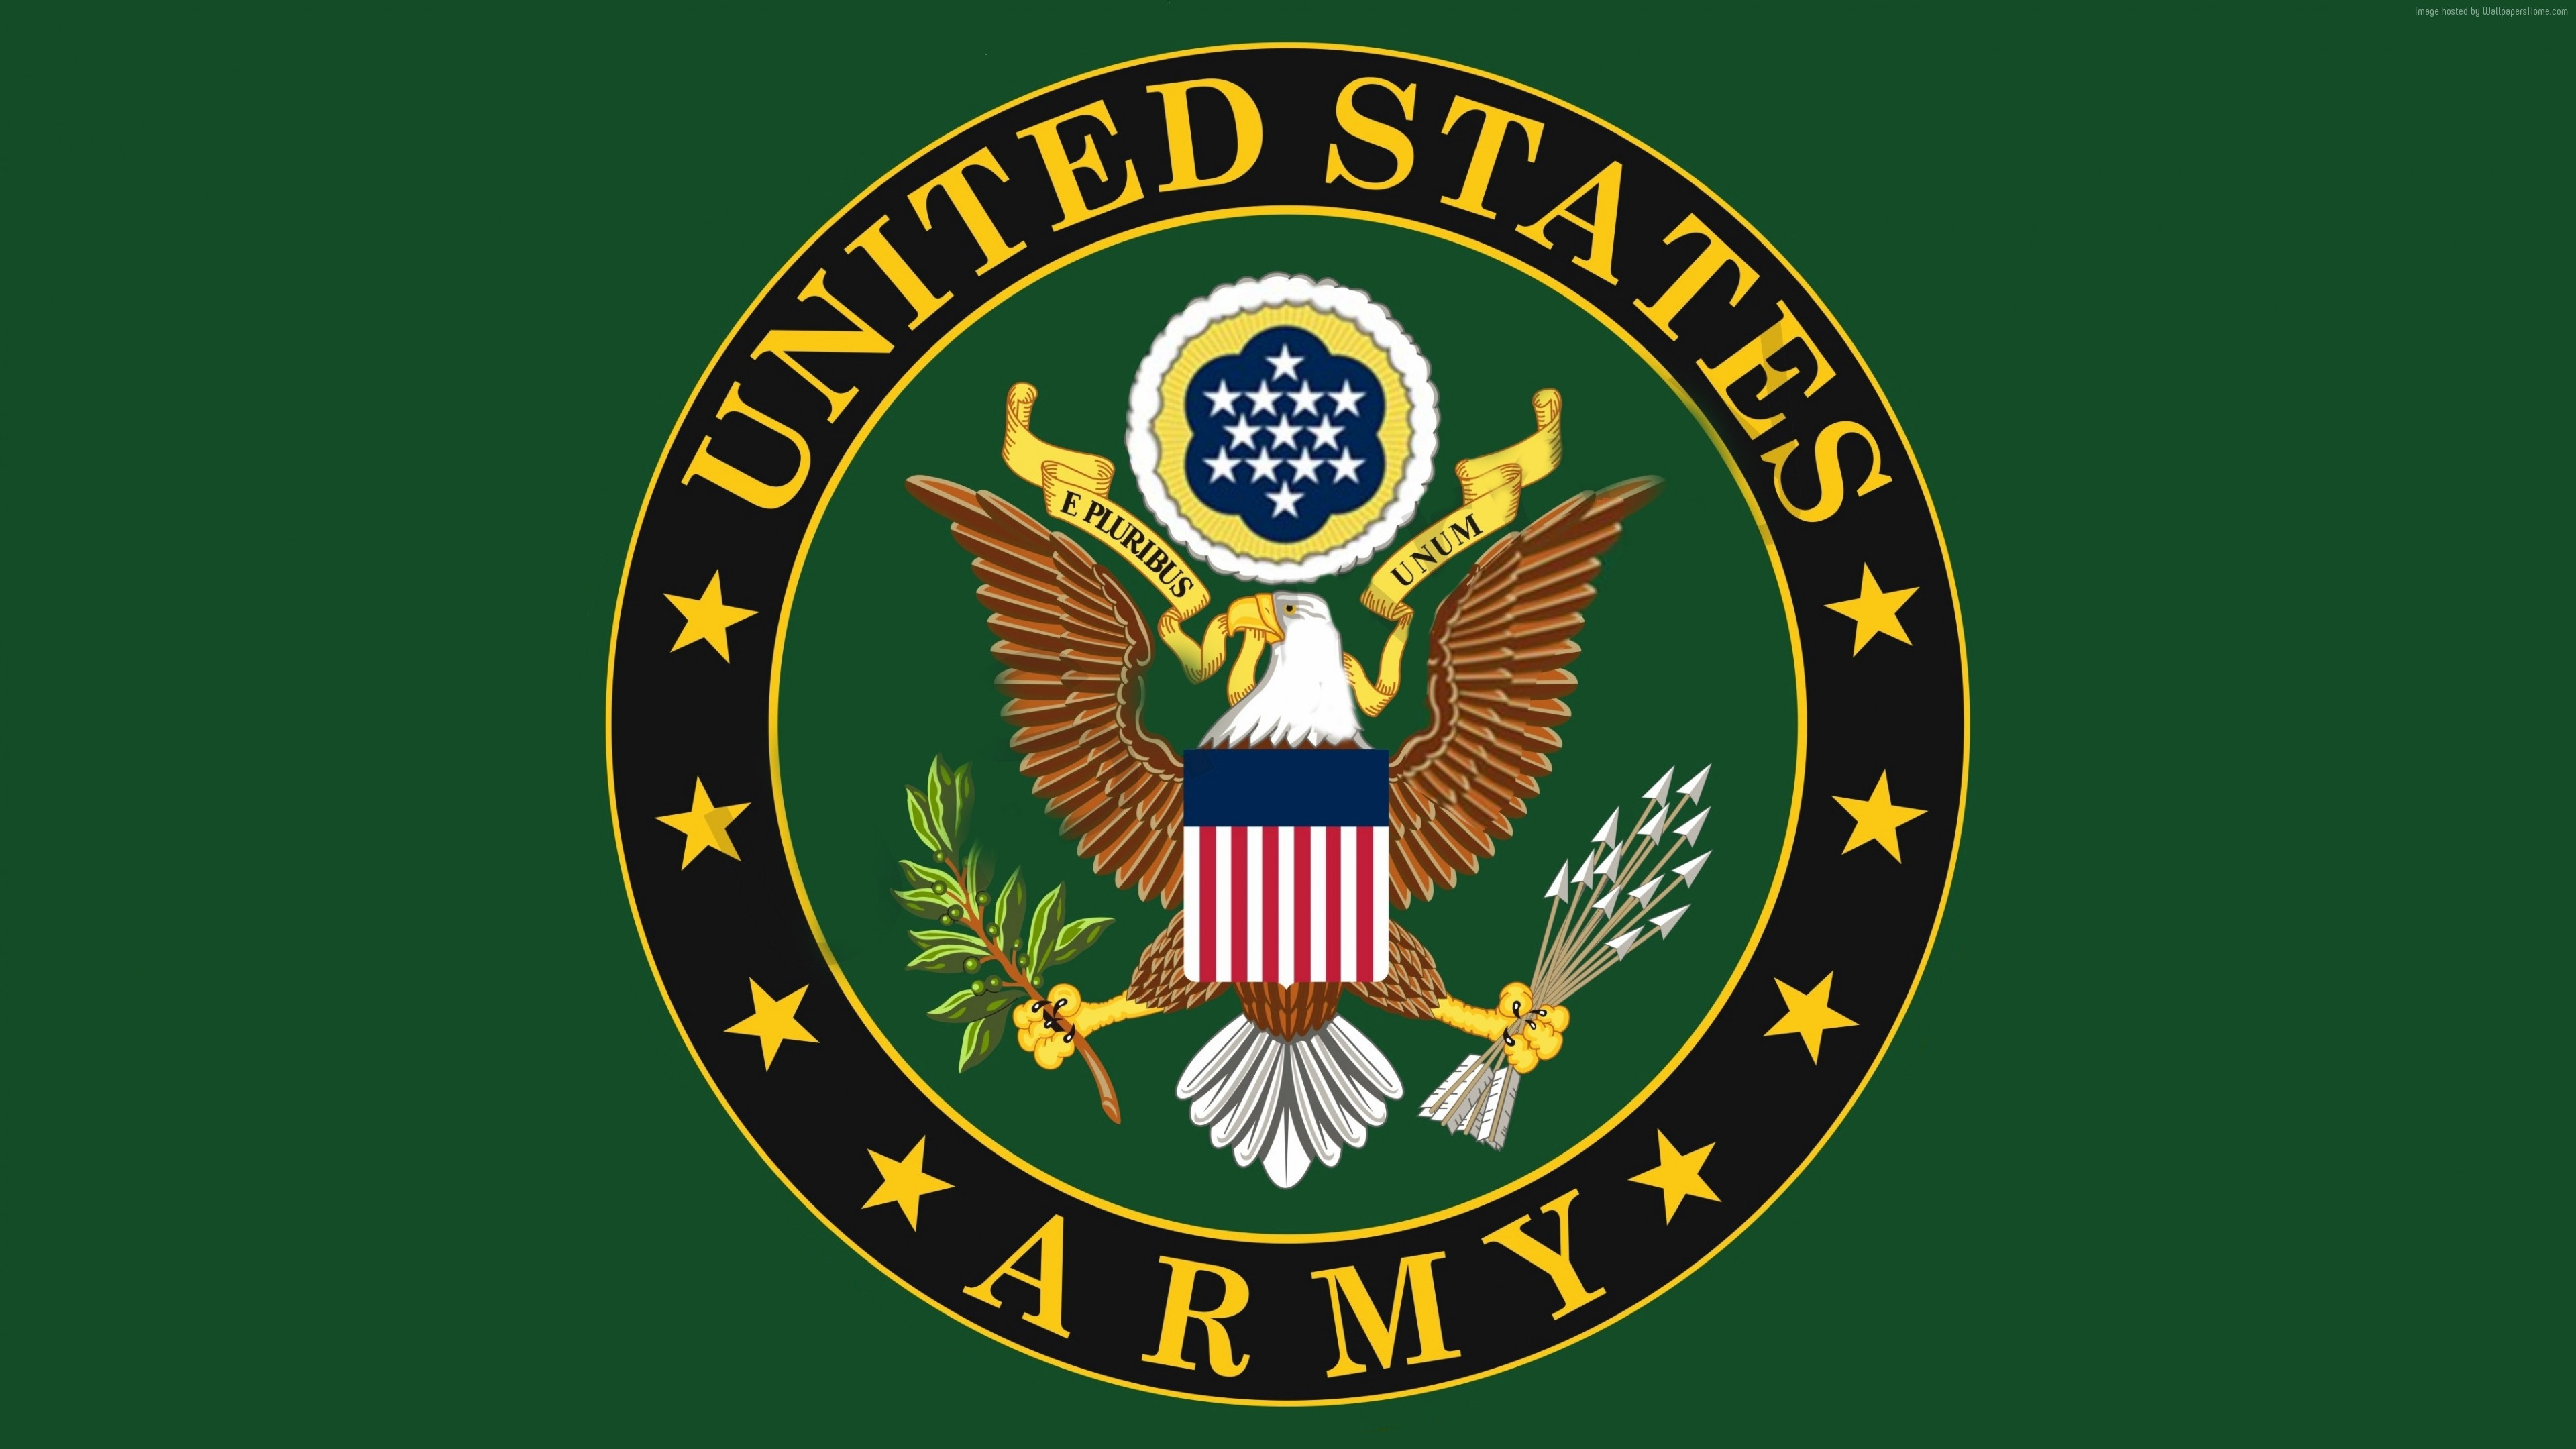 Wallpaper U.S. Army, logo, eagle, Military